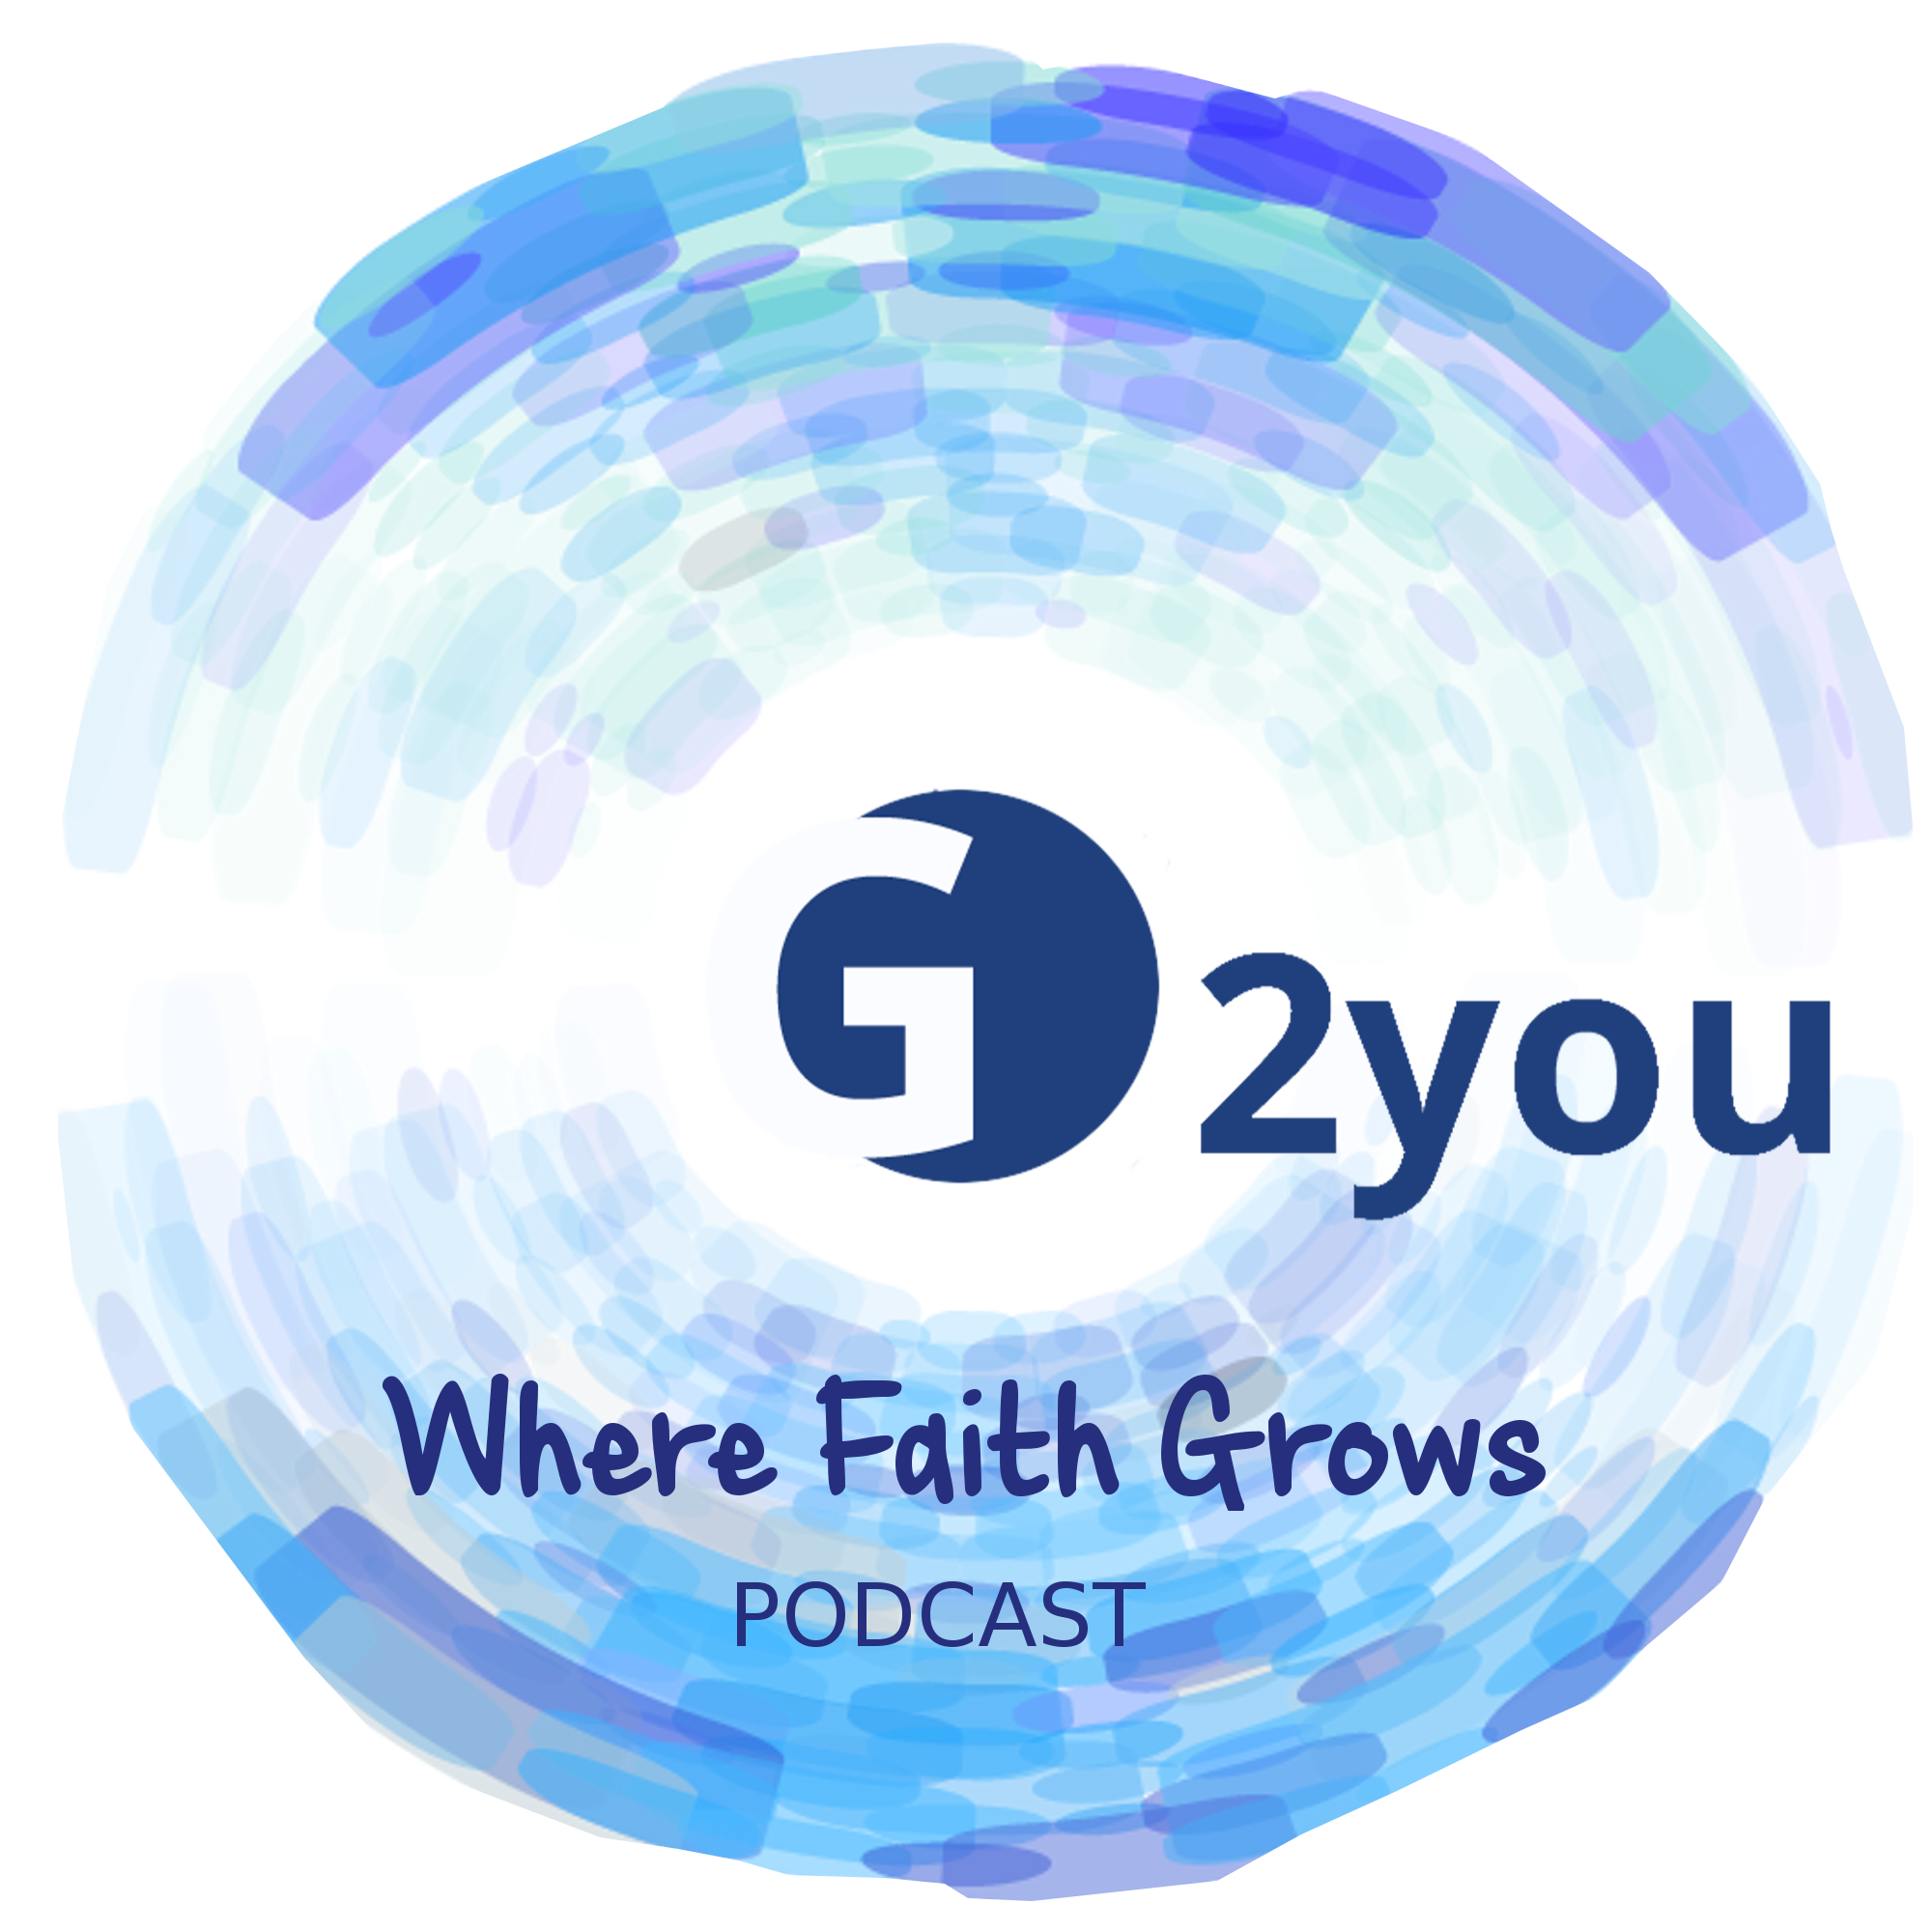 Where Faith Grows